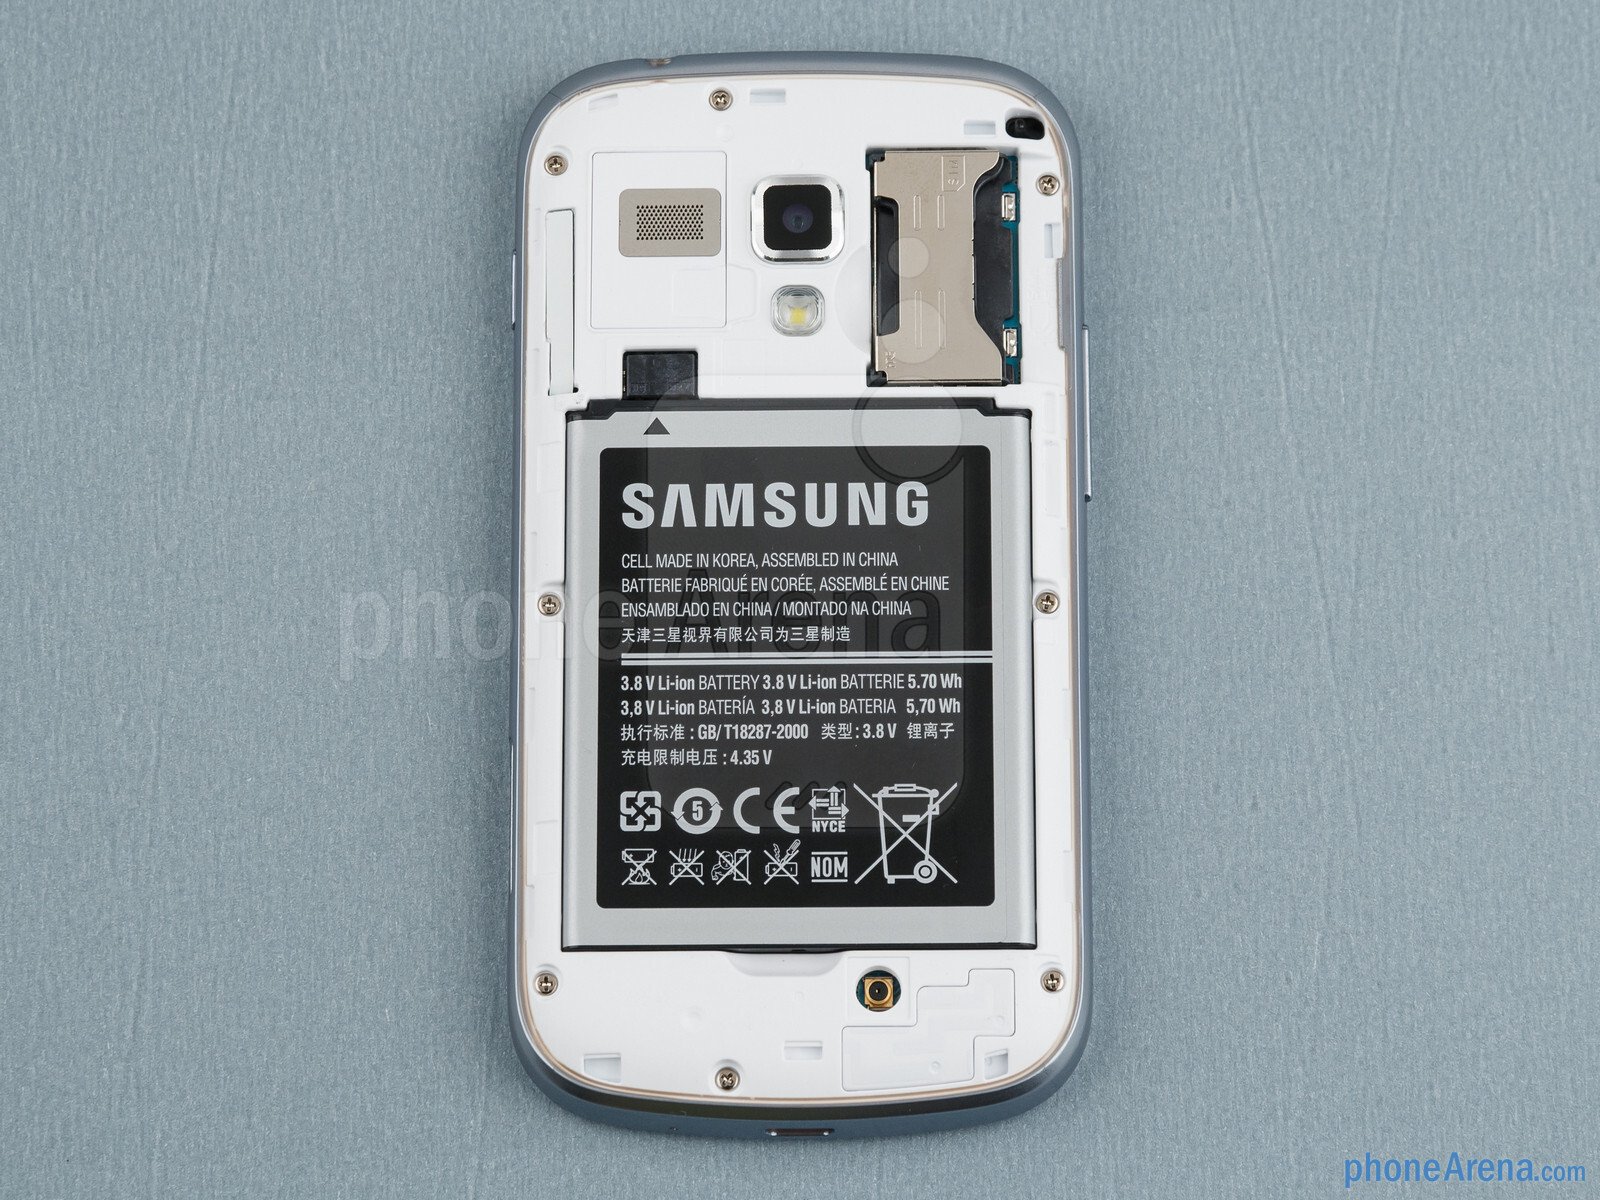 Gallery for gt samsung galaxy s6102 - Gallery For Gt Samsung Galaxy S6102 76